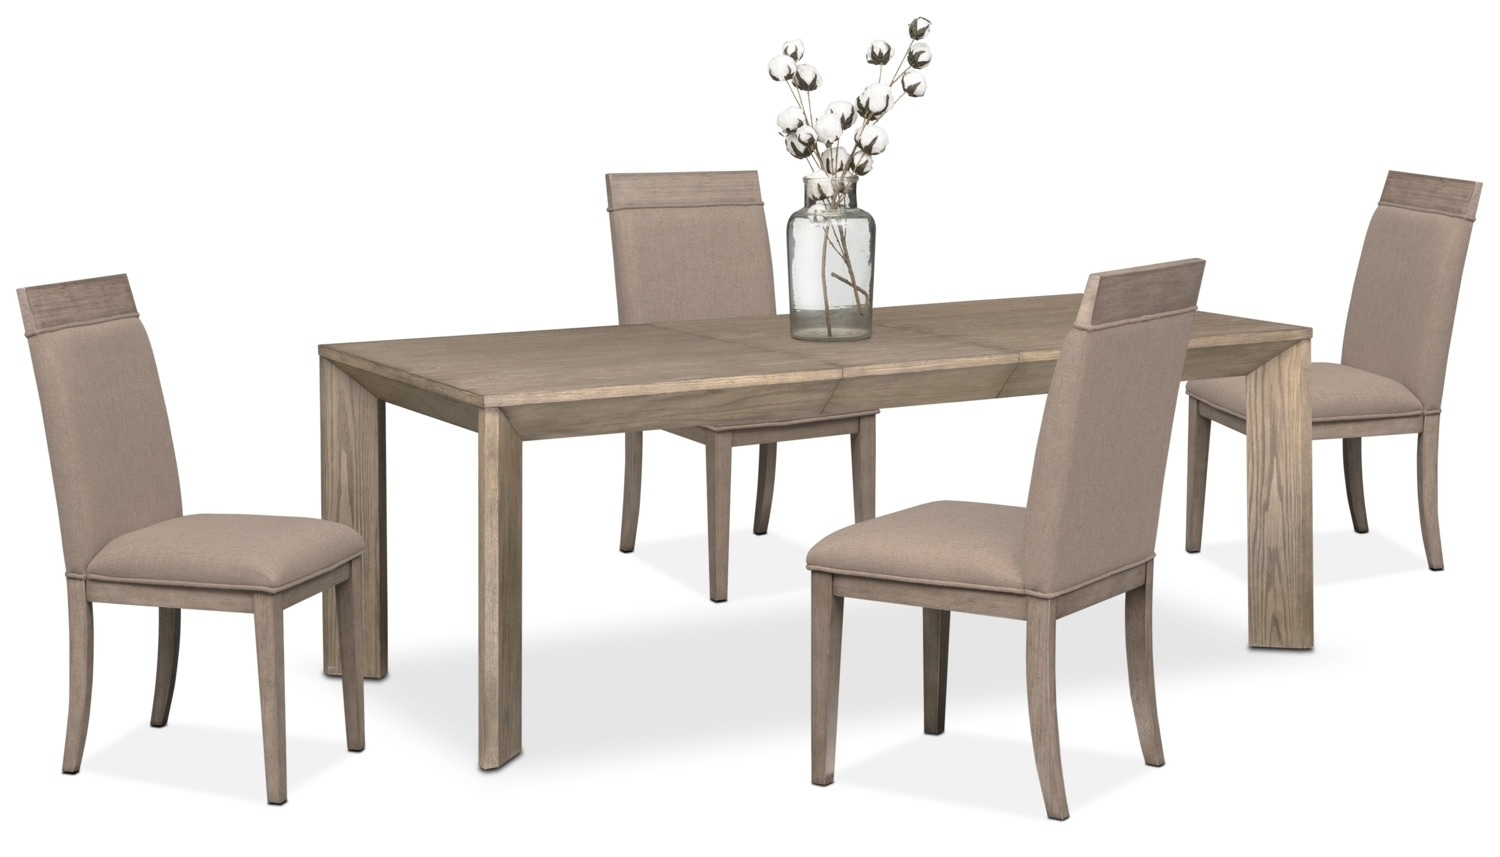 Gavin Table And 4 Side Chairs – Graystone | American Signature Furniture With 2017 Gavin 6 Piece Dining Sets With Clint Side Chairs (Image 11 of 20)